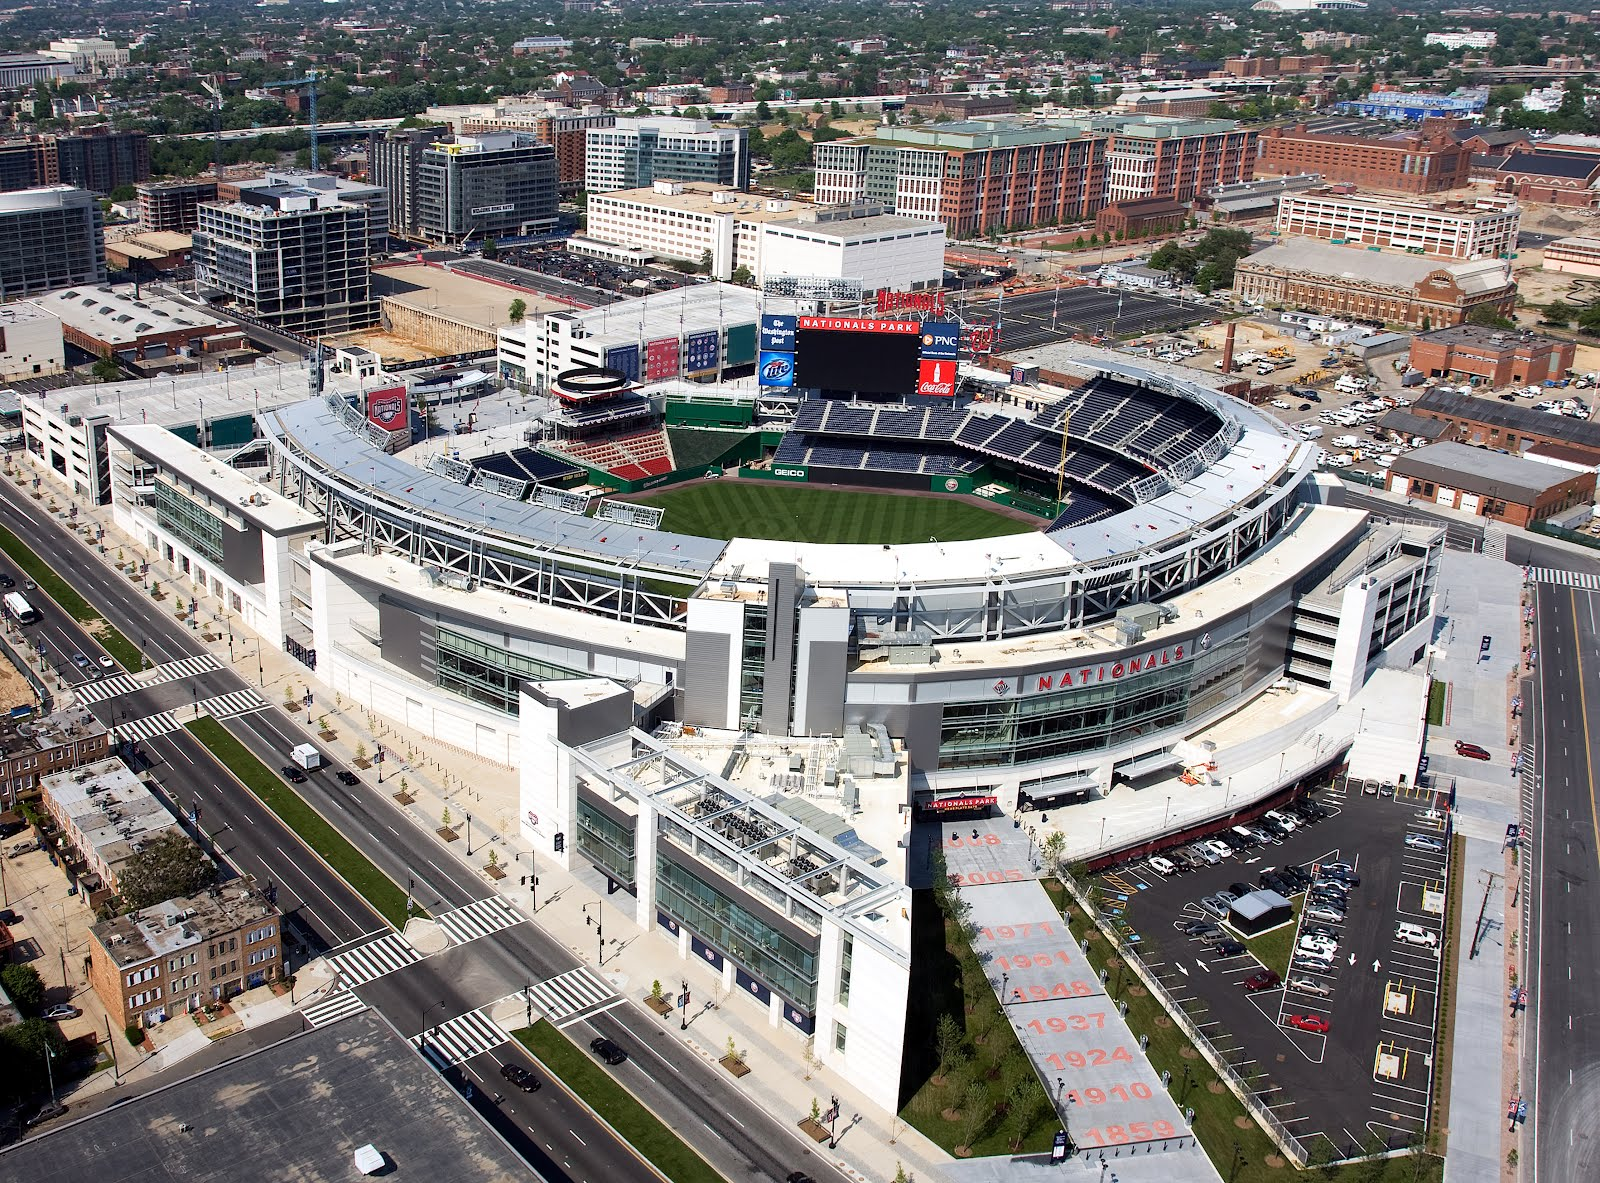 Washington Nationals Stadium Ballpark, Washington, D.C.